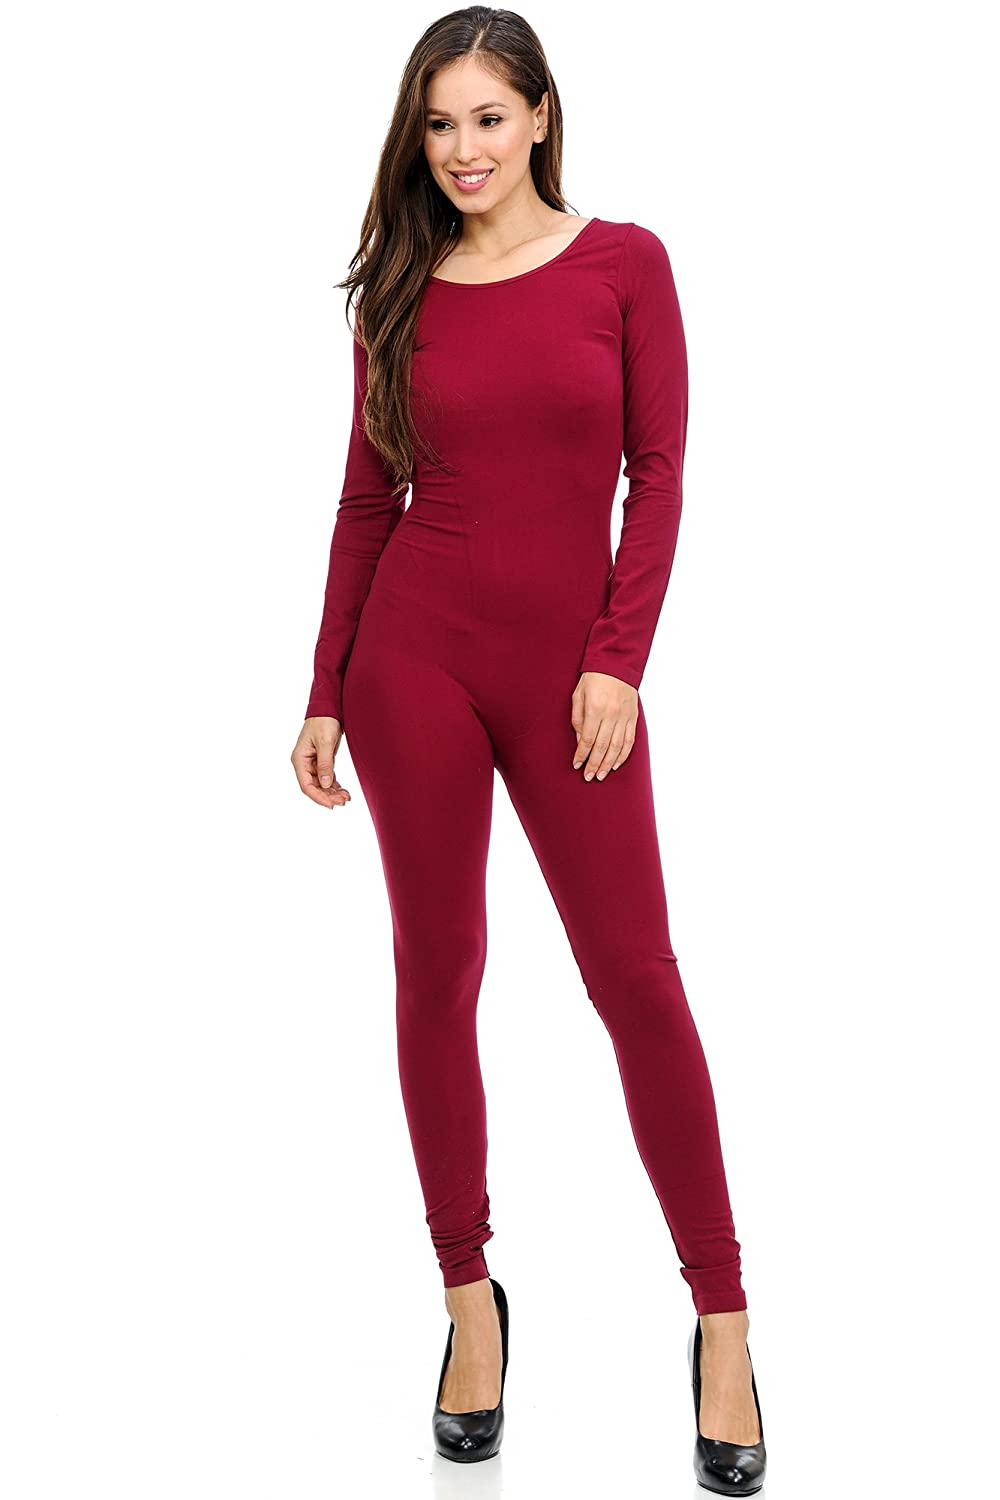 64cca95868 World of Leggings® ORIGINALS Premium Women s Basic Jumpsuit - We are a  proud USA based retailer with 100% of our employees in the USA.